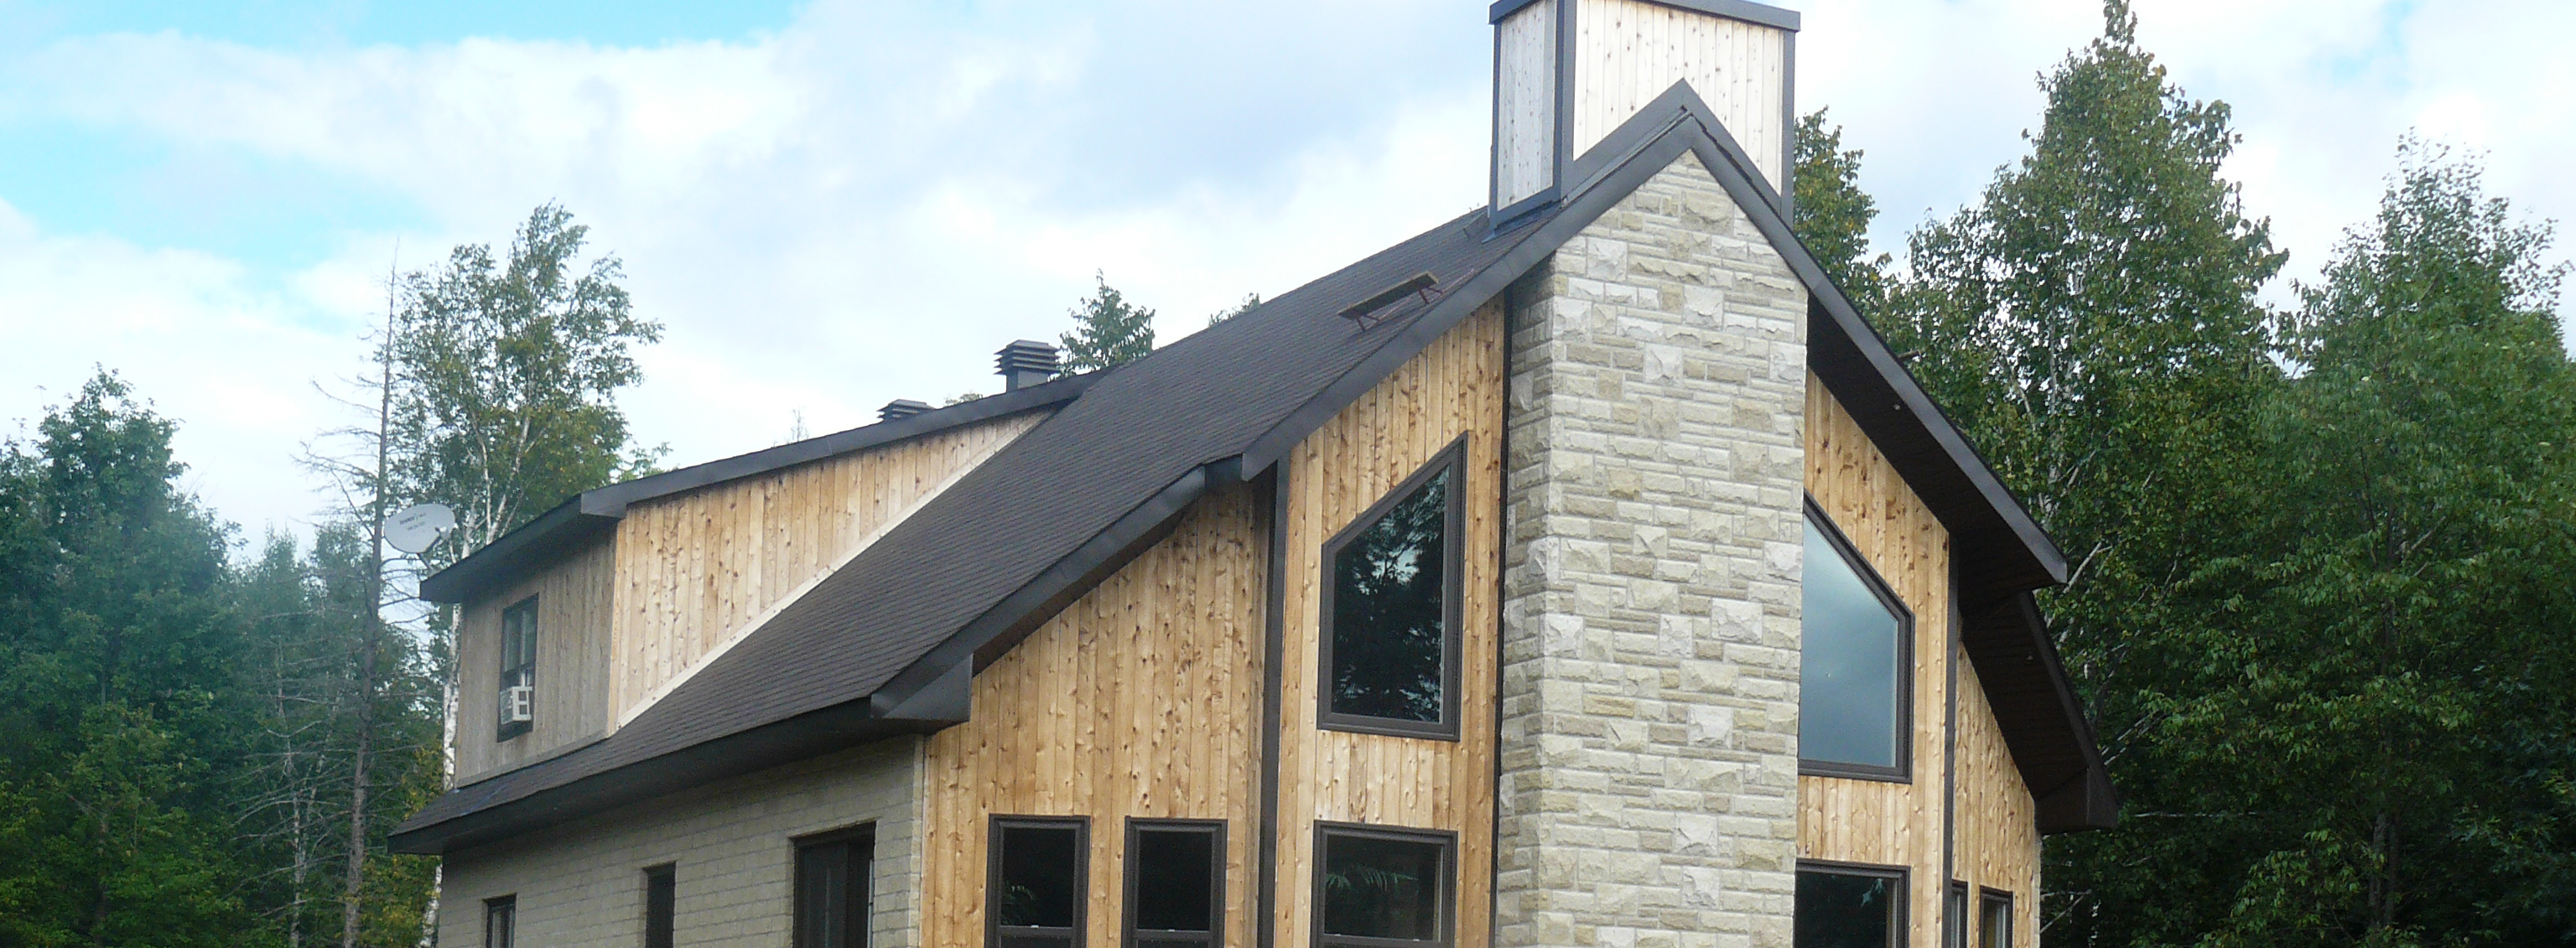 Trusted Ottawa Roofing Company: Ottawa Home Exteriors